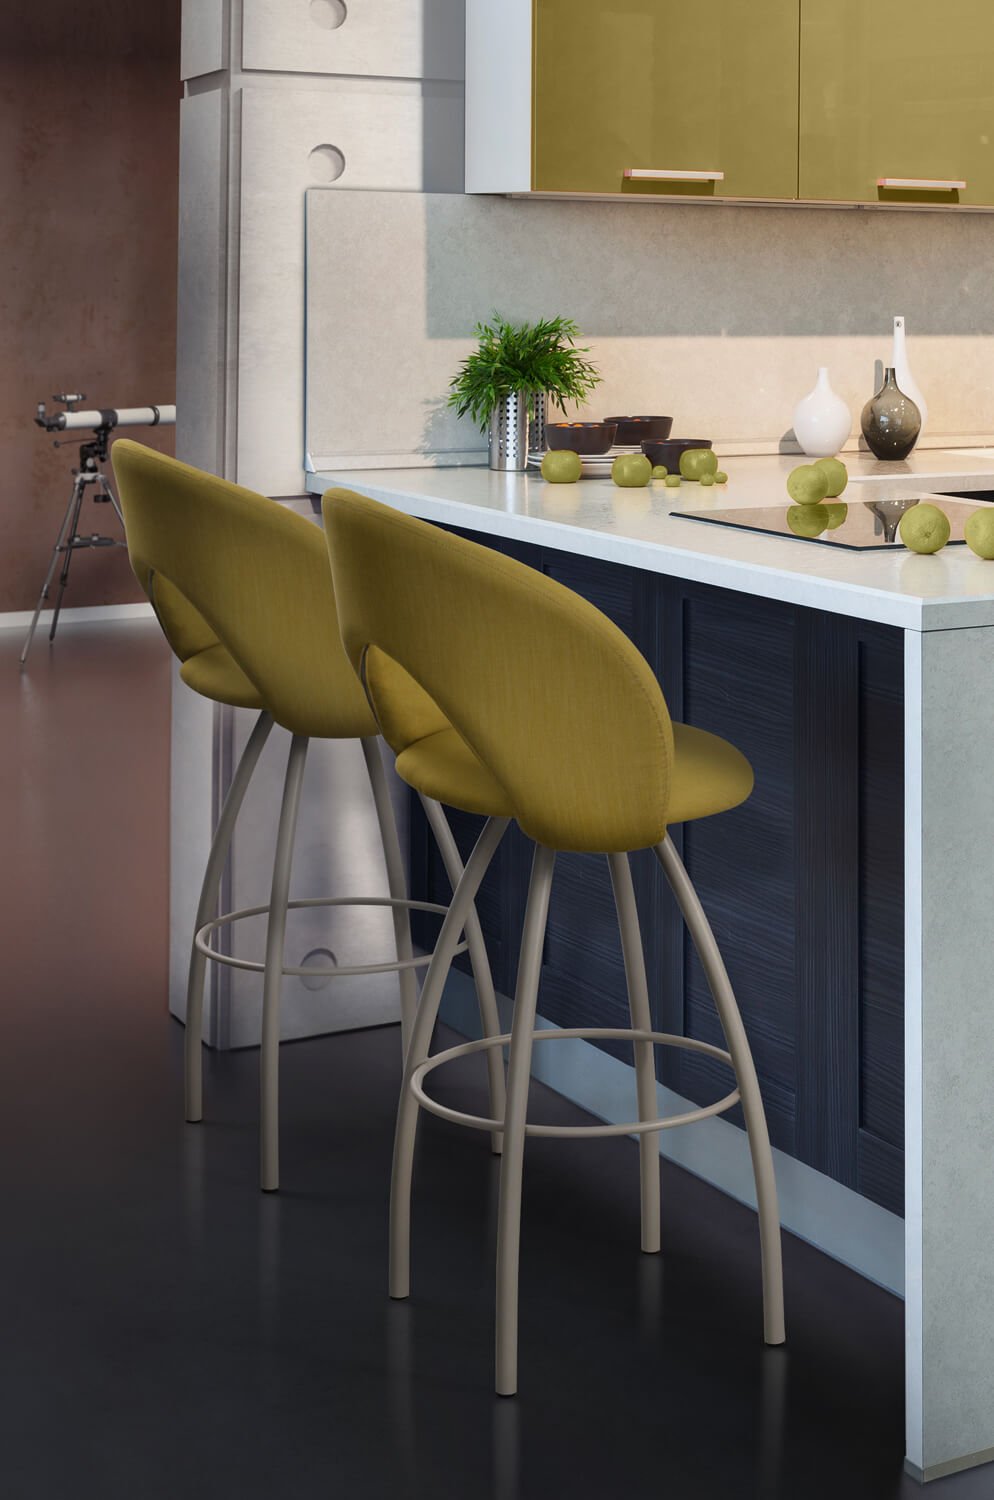 Buy Trica S Biscotti Modern Italian Swivel Bar Stool